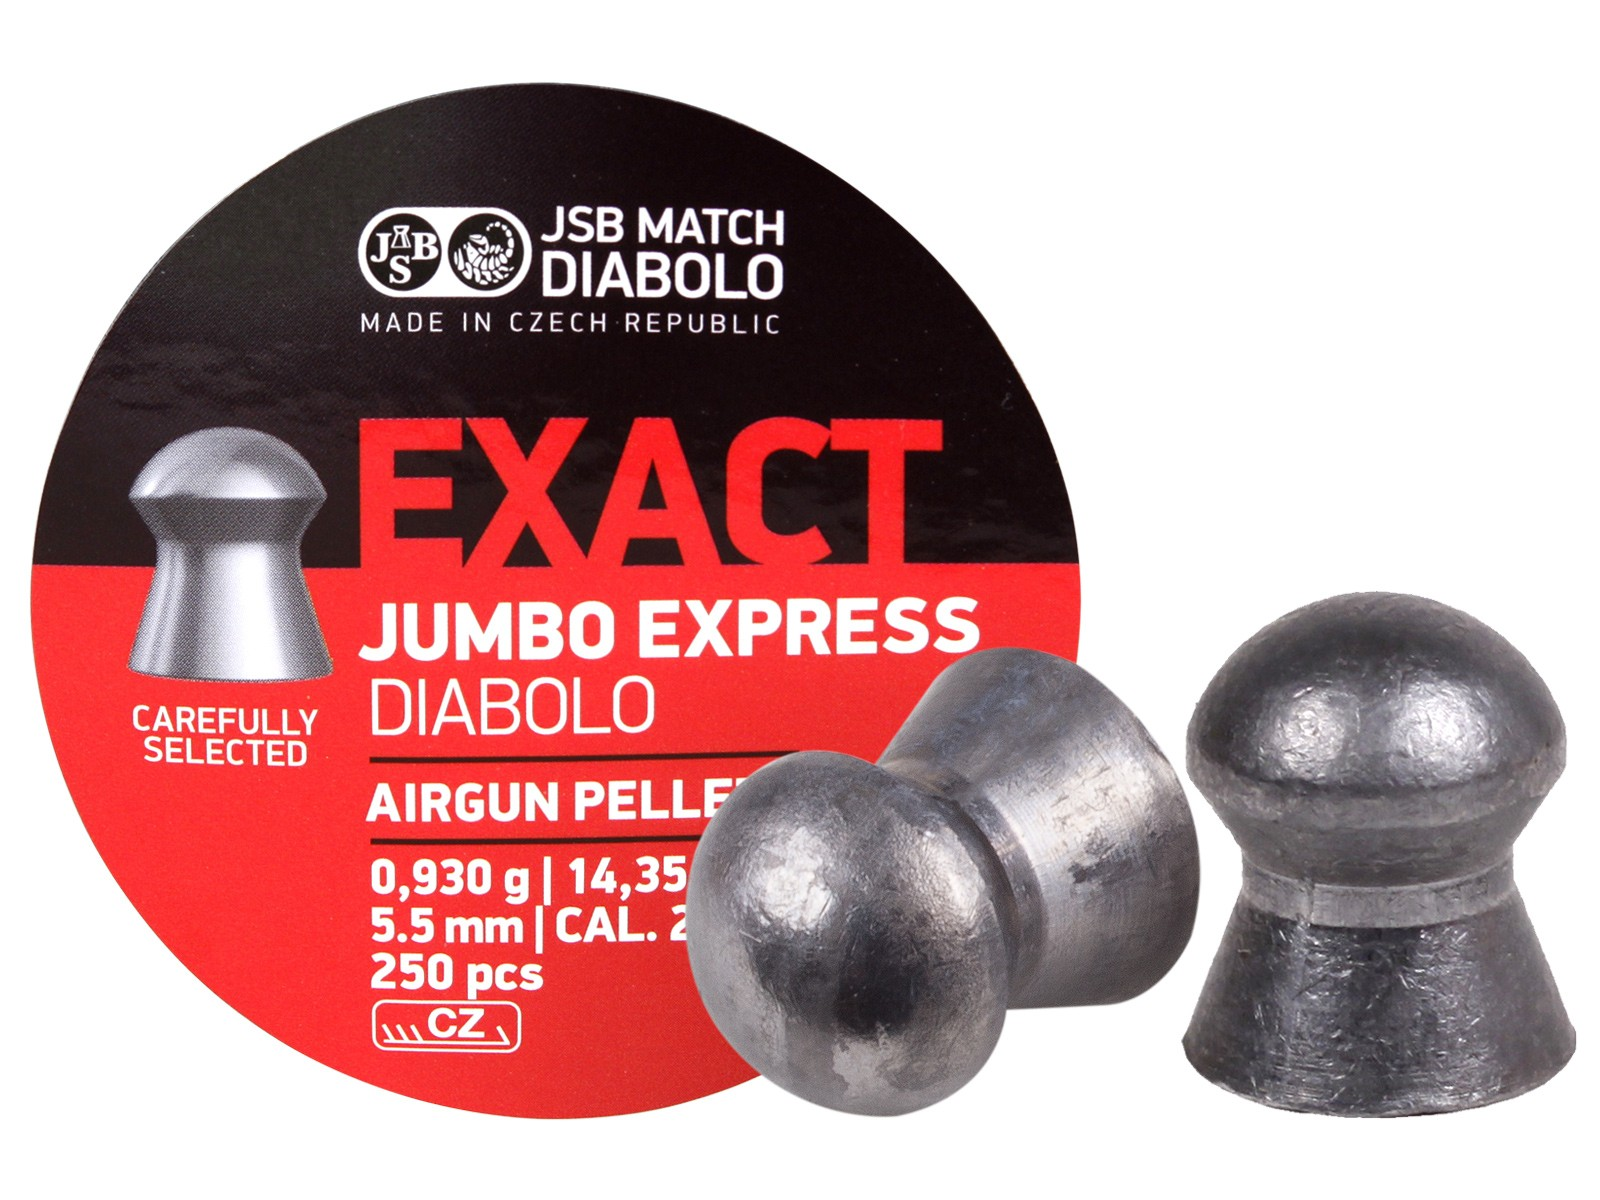 JSB Diabolo Exact Jumbo Express .22 Cal, 14.3 Grains, Domed, 250ct